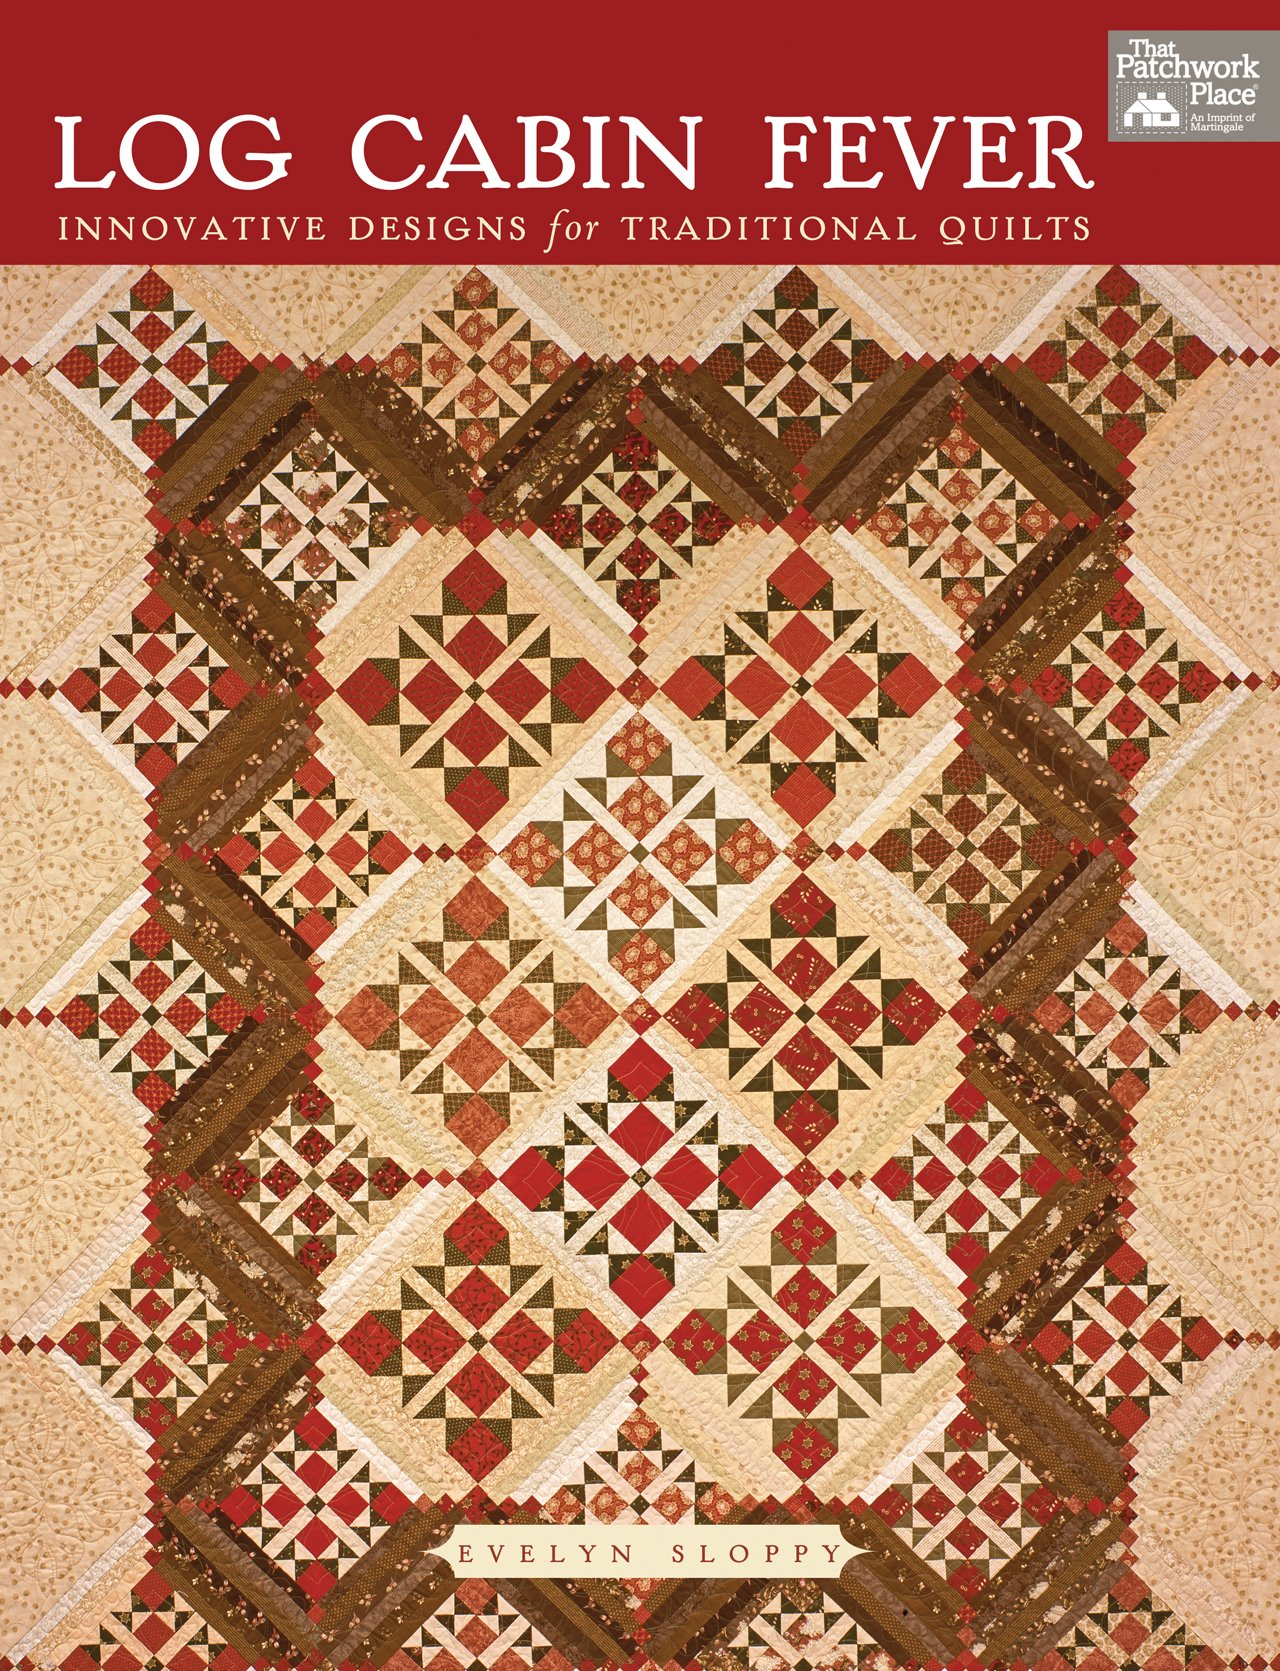 Log Cabin Fever: Innovative Designs For Traditional Quilts: Evelyn Sloppy:  9781564774118: Amazon.com: Books